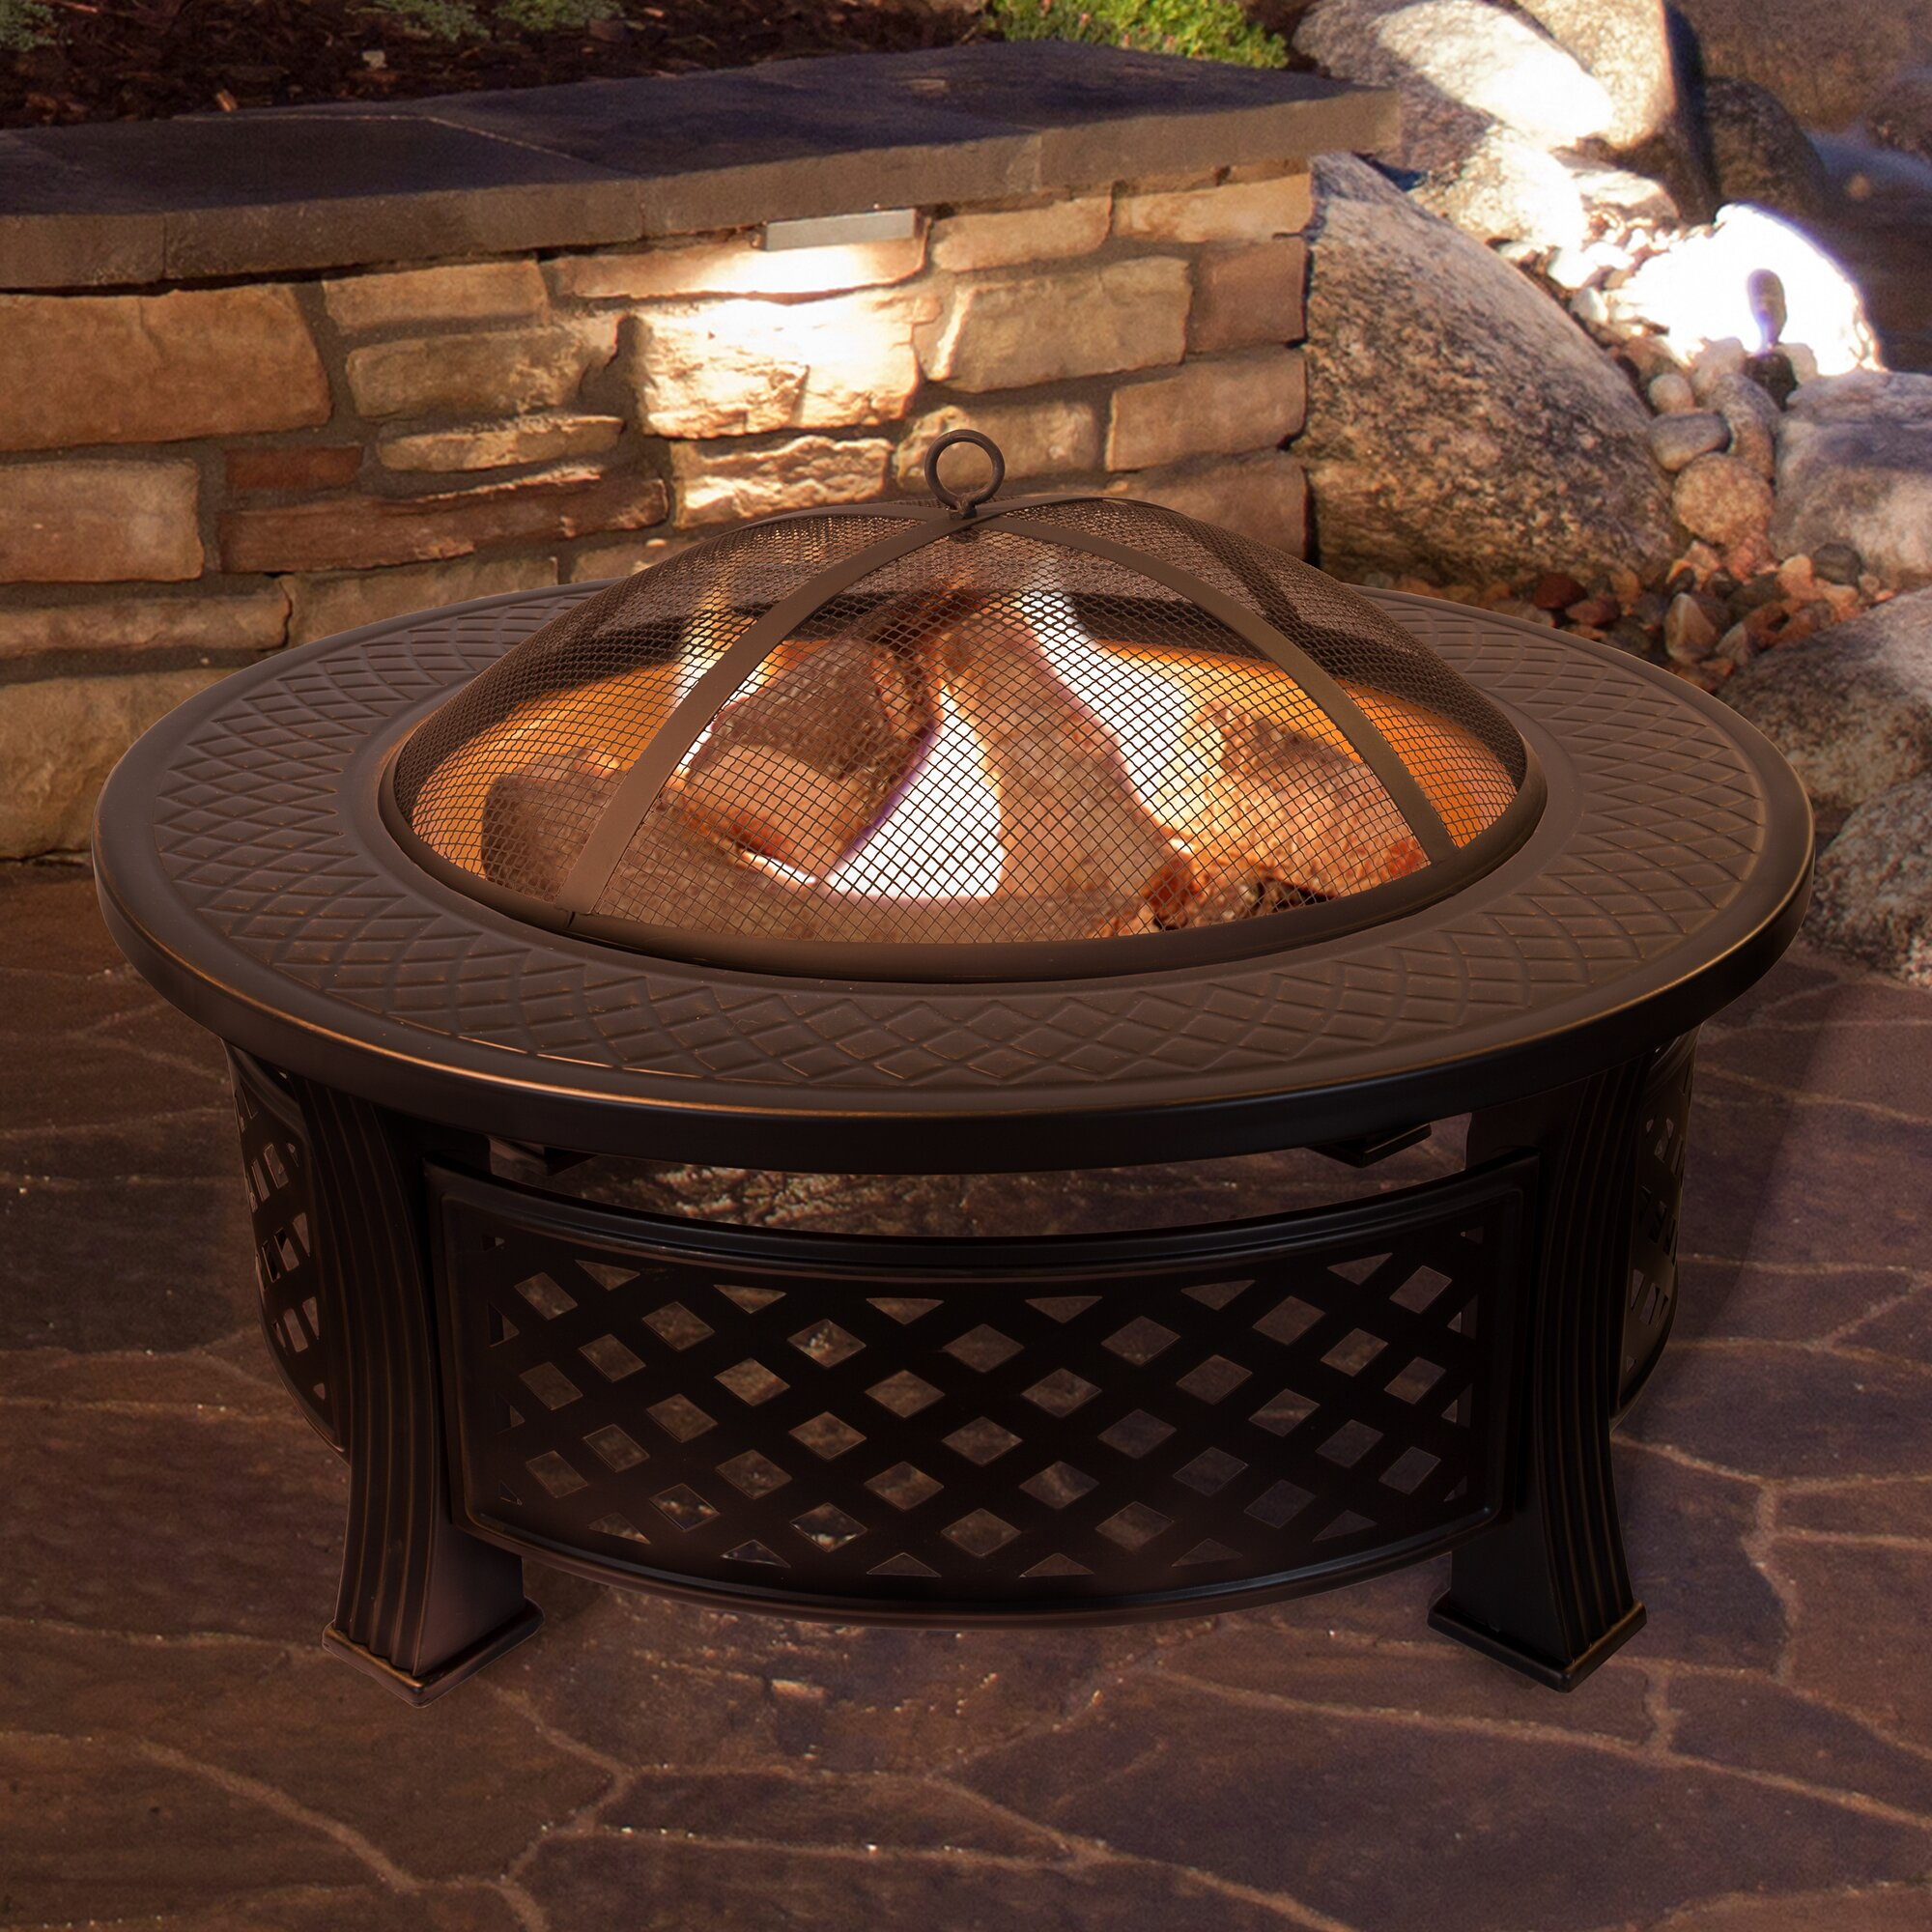 Patio Table With Wood Burning Fire Pit: Pure Garden Round Steel Wood Burning Fire Pit Table